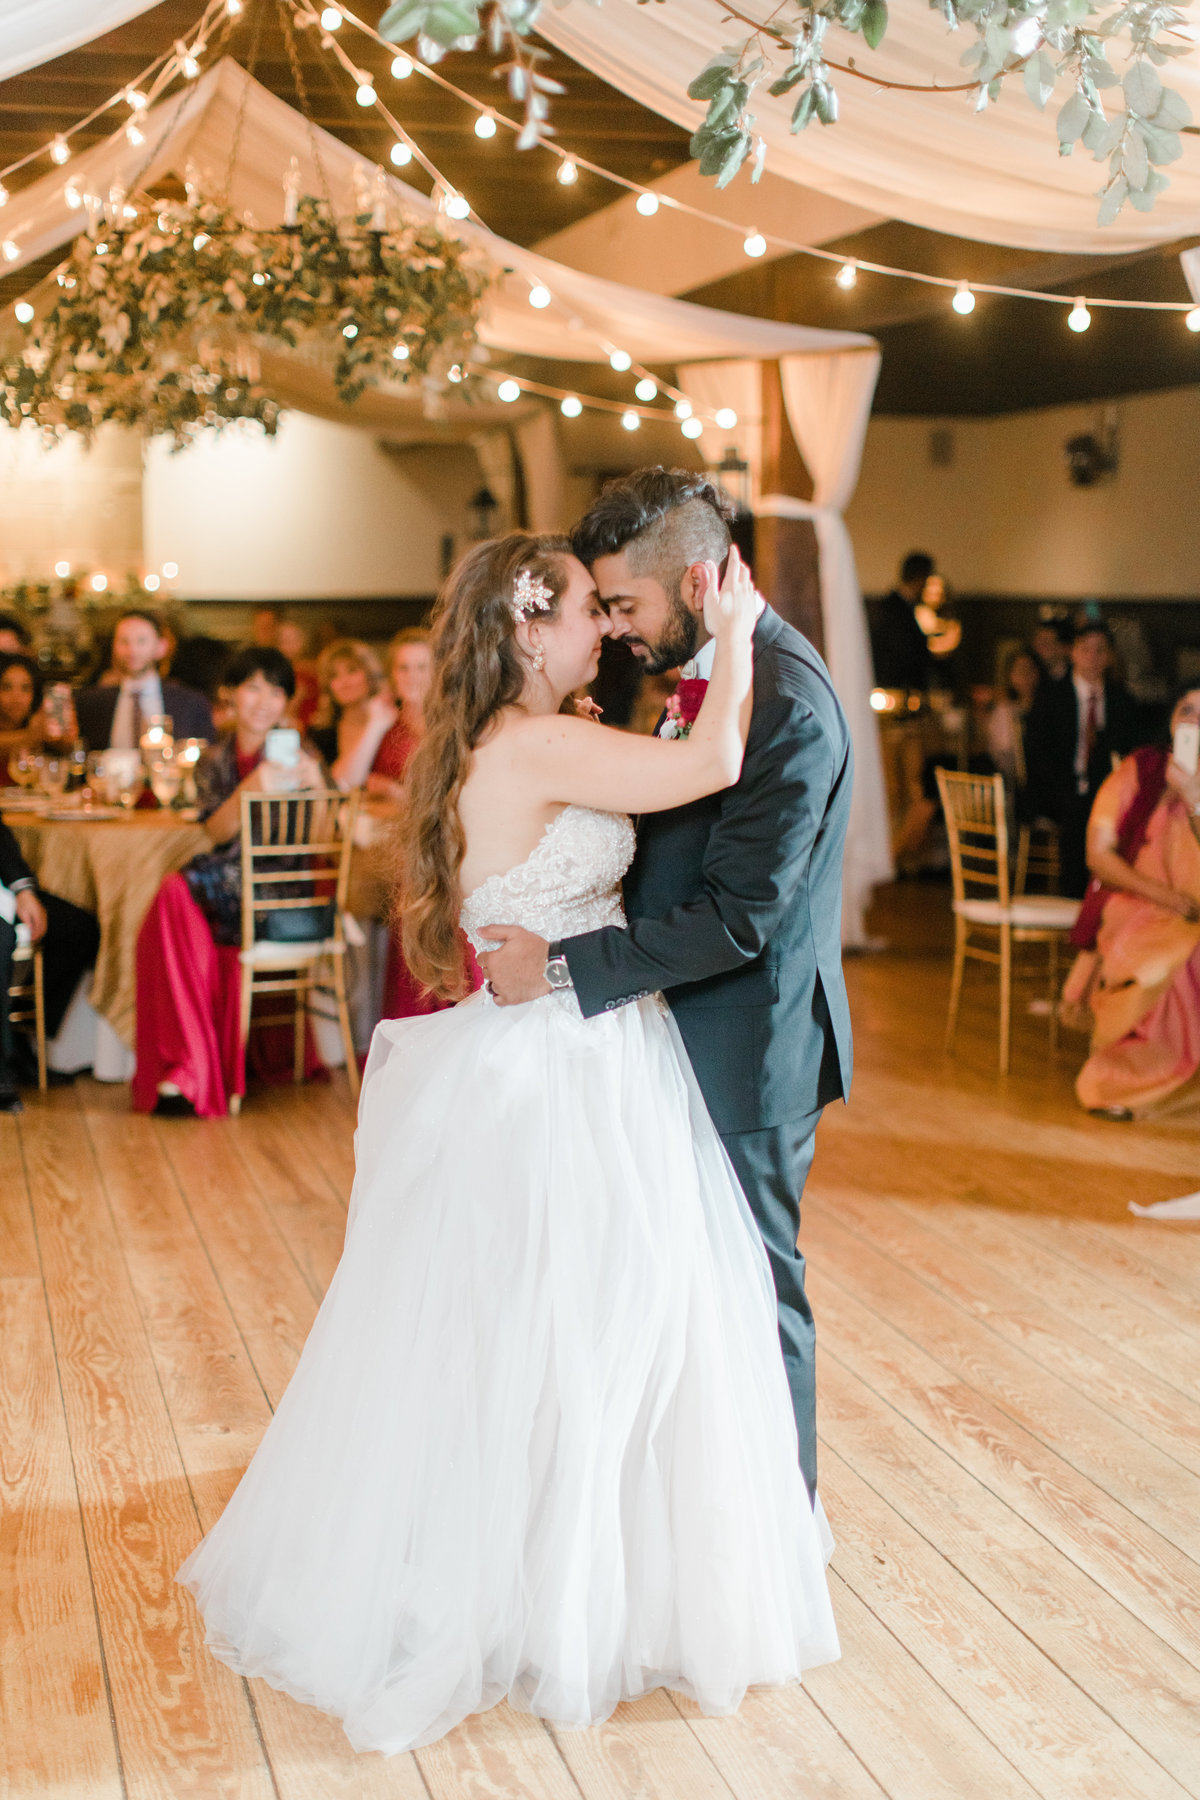 Williamsburg_Winery_Fall_Wedding_Virginia_DC_Photographer_Angelika_Johns_Photography-0057